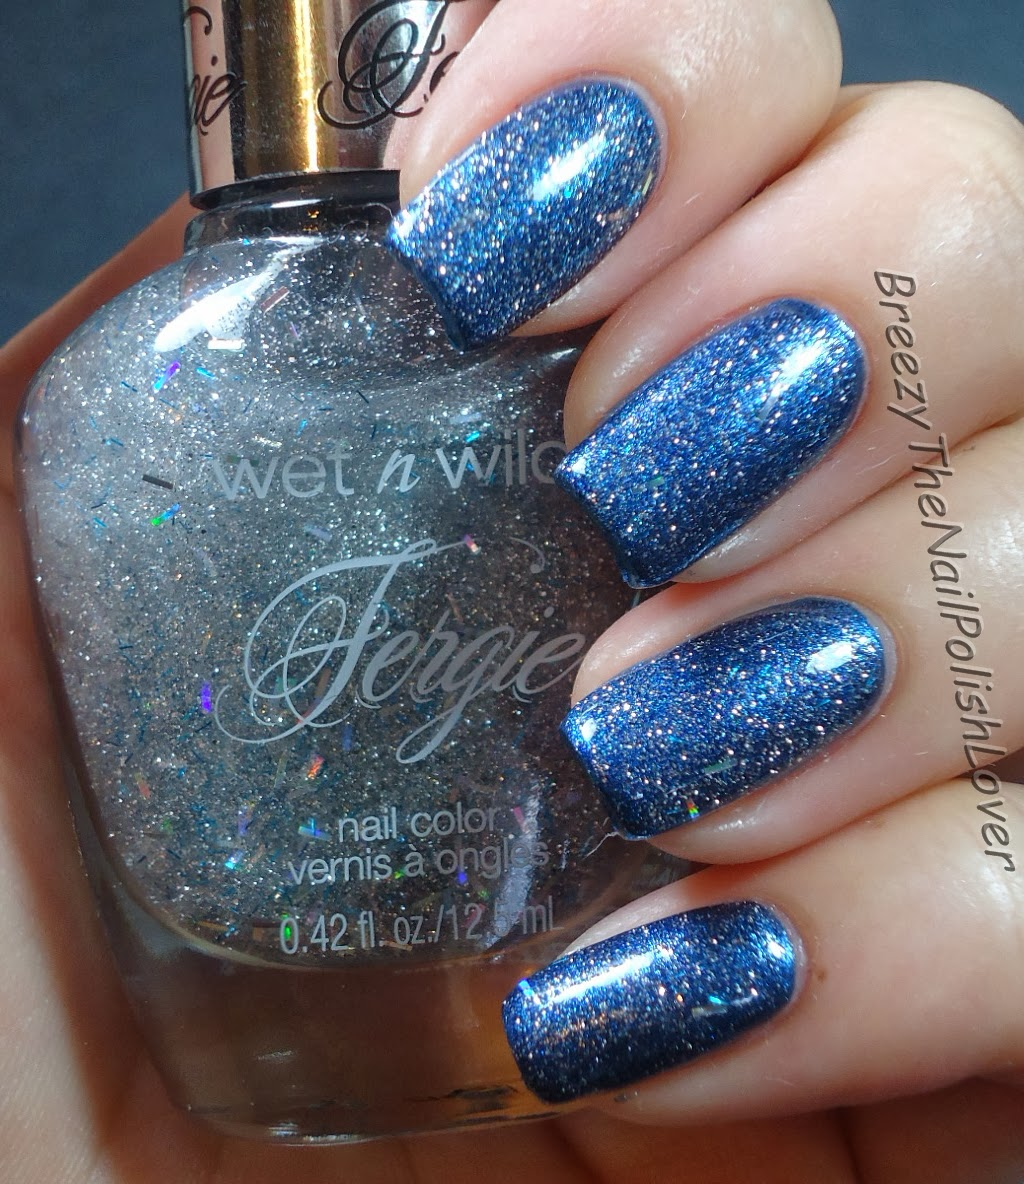 BreezyTheNailPolishLover: Wet n Wild Fergie Nail Polish Review/Swatches